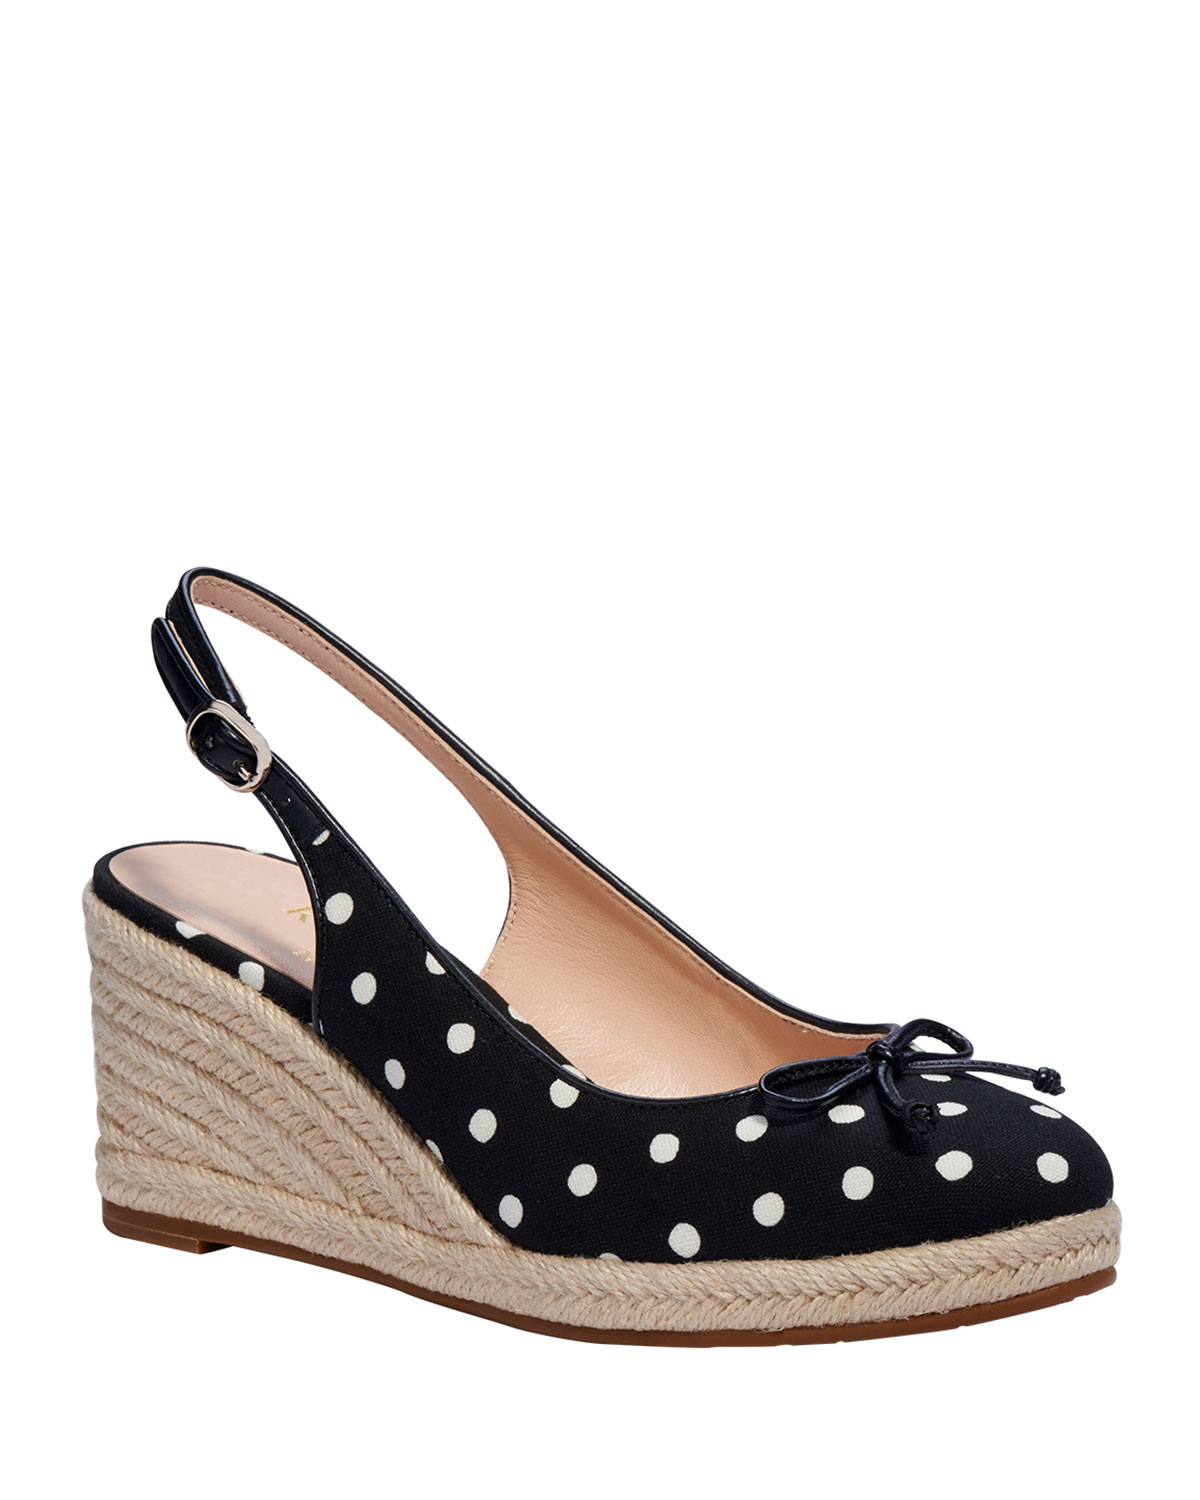 Kate Spade PANAMA NIGHTS POLKA-DOT WEDGE SANDALS